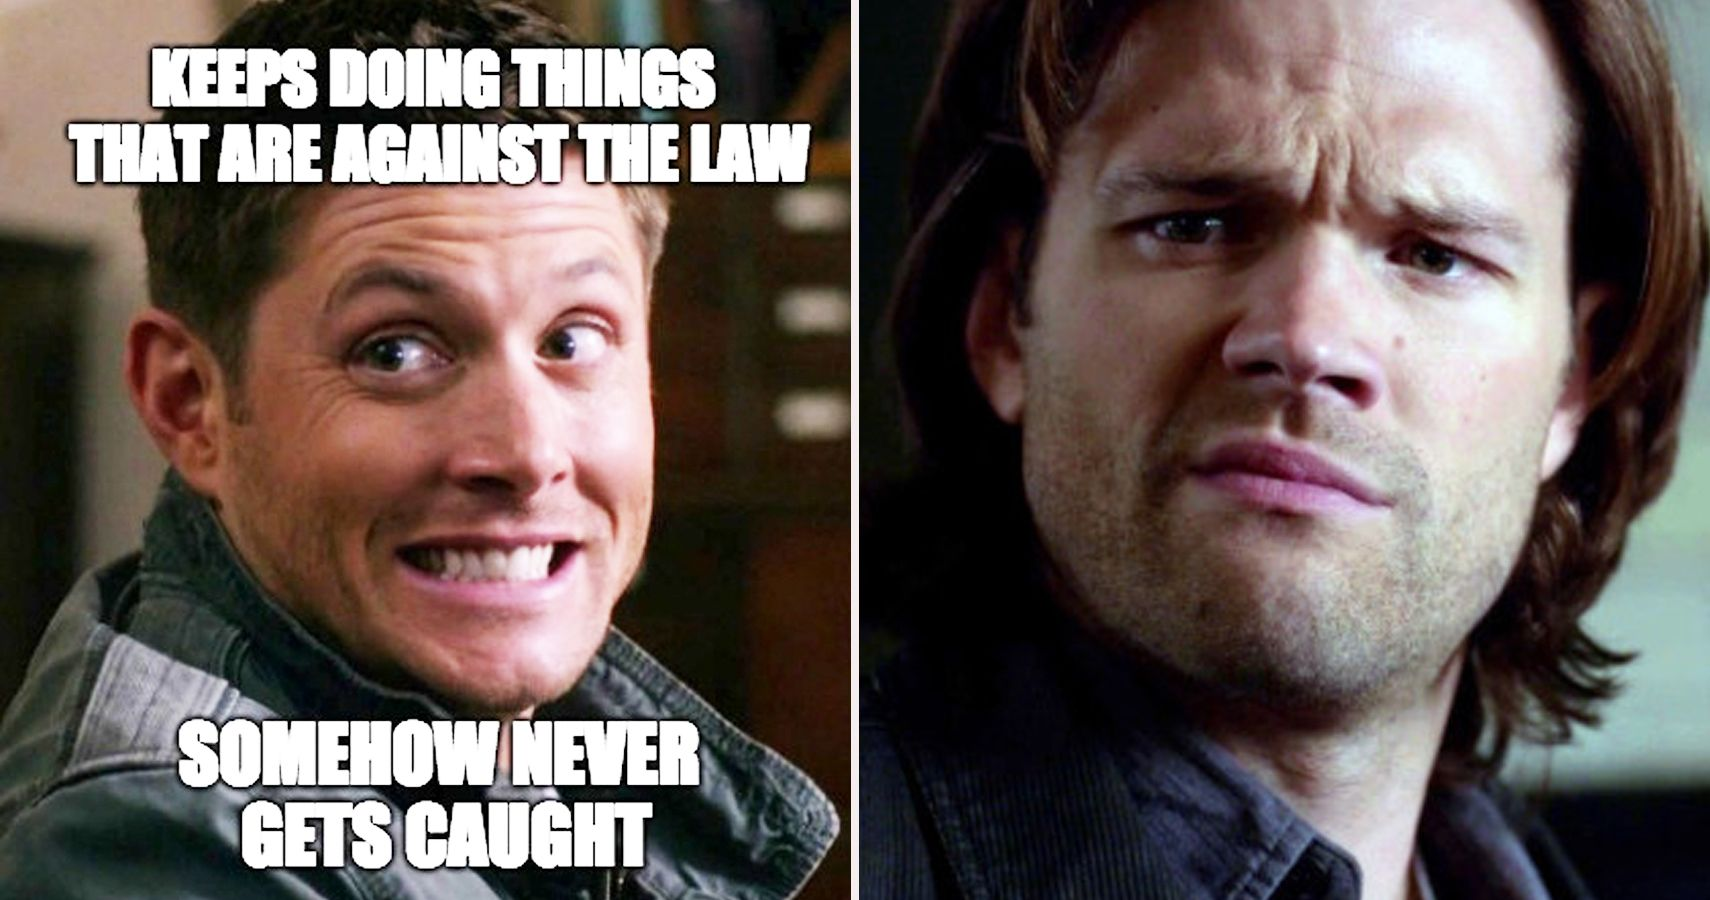 25 Times Supernatural Made No Sense (And Fans Didn't Care)